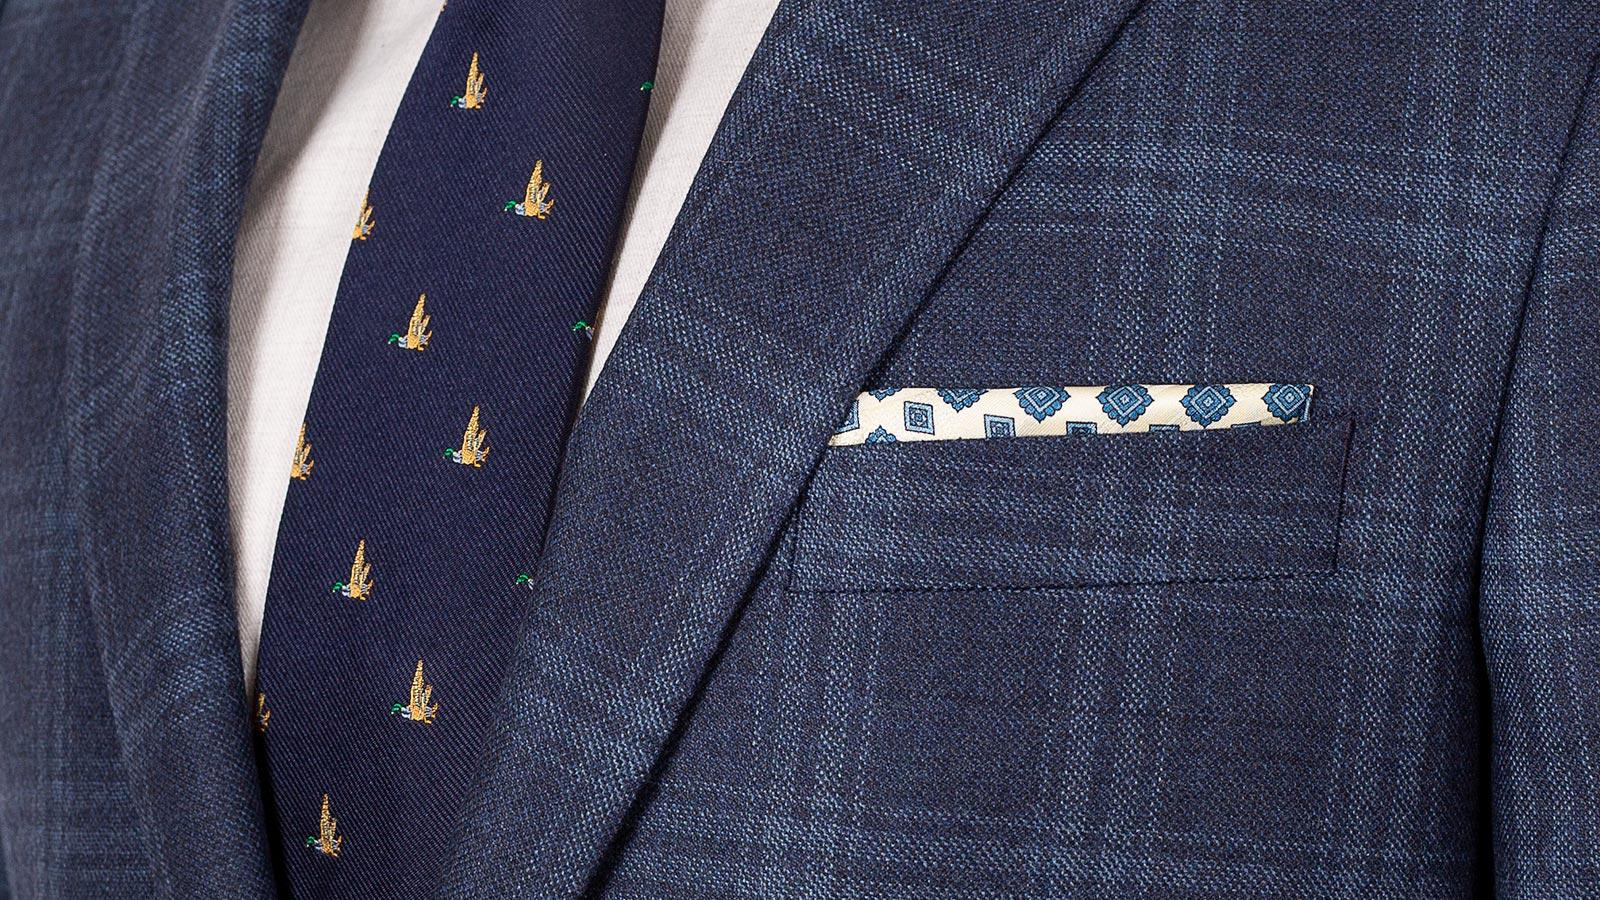 Steel Blue Check Wool & Cashmere Suit - slider image 1